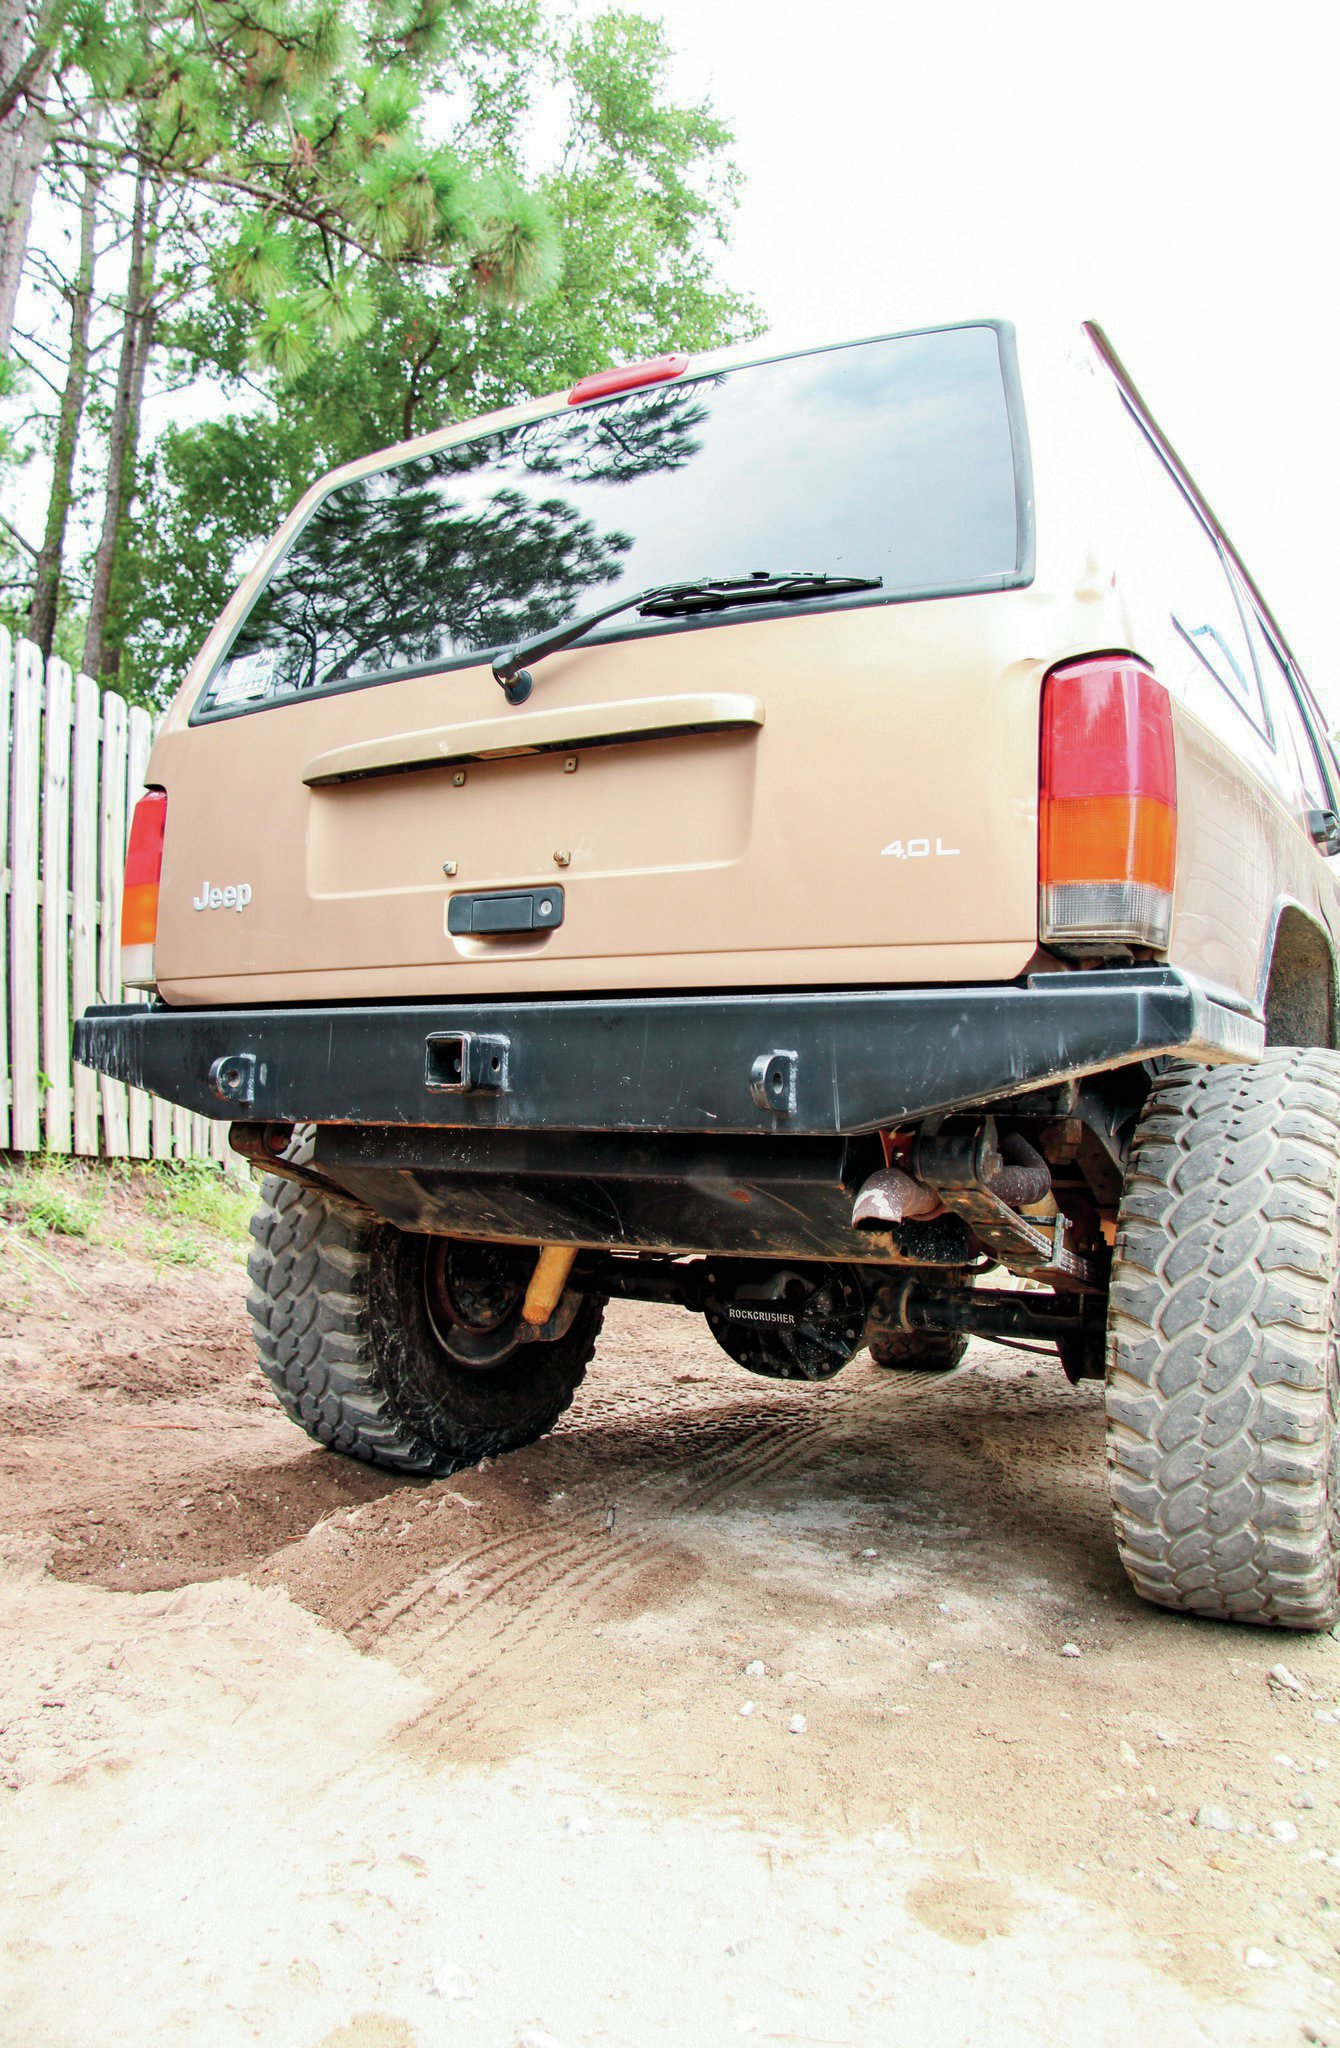 An AJ's Offroad Armor rear bumper, along with a gas tank skidplate, has us all set with rear protection. We'll most likely carry the spare tire inside of the Jeep, thereby negating the need for an external tire carrier.